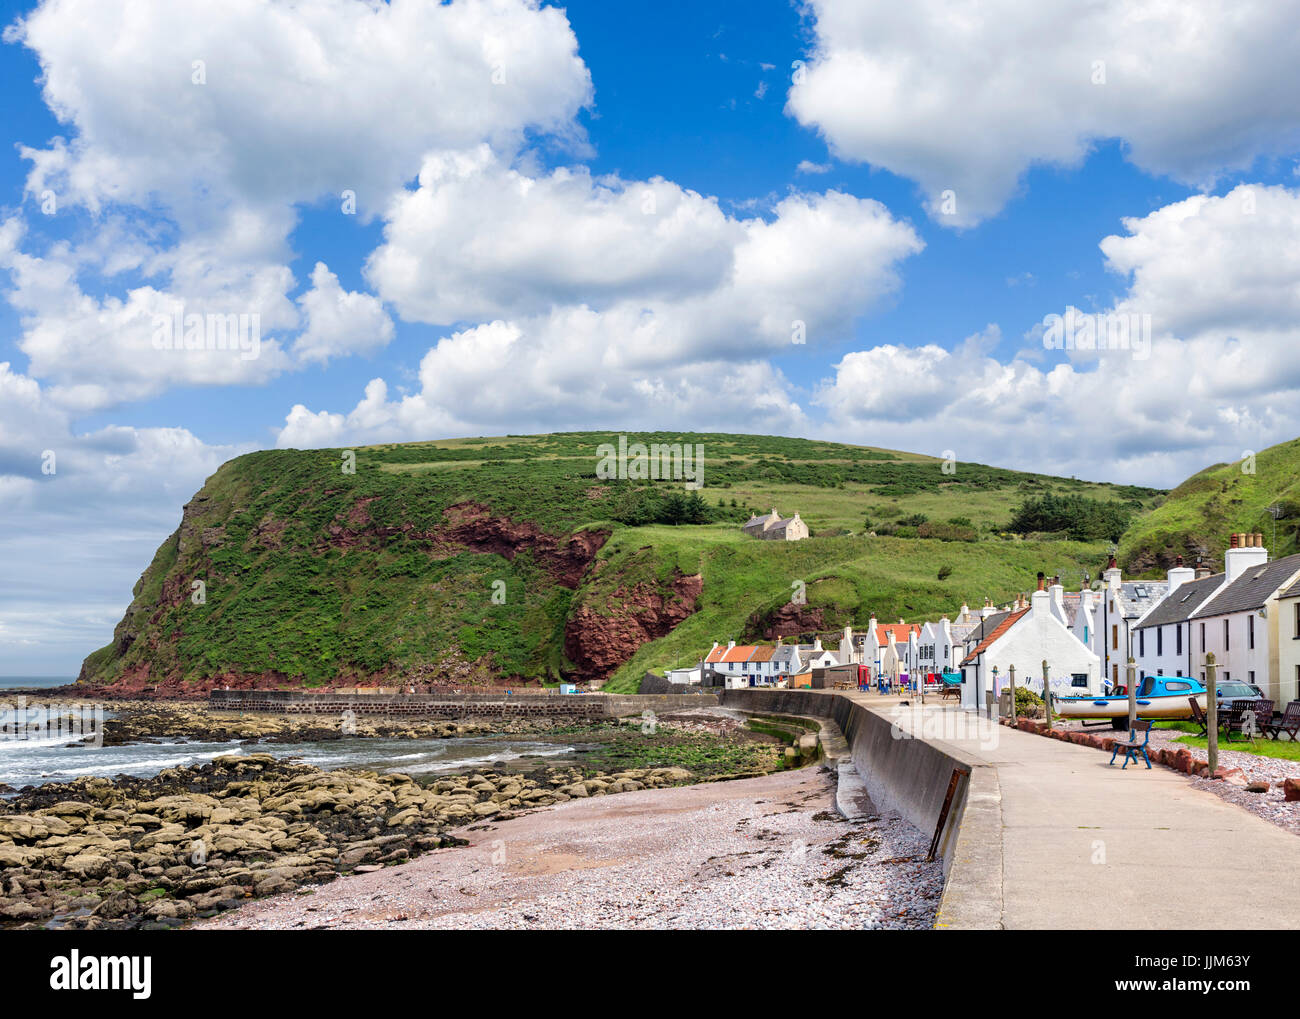 The small fishing village of Pennan, Aberdeenshire, Scotland, UK. The village was a location for the 1983 film Local - Stock Image